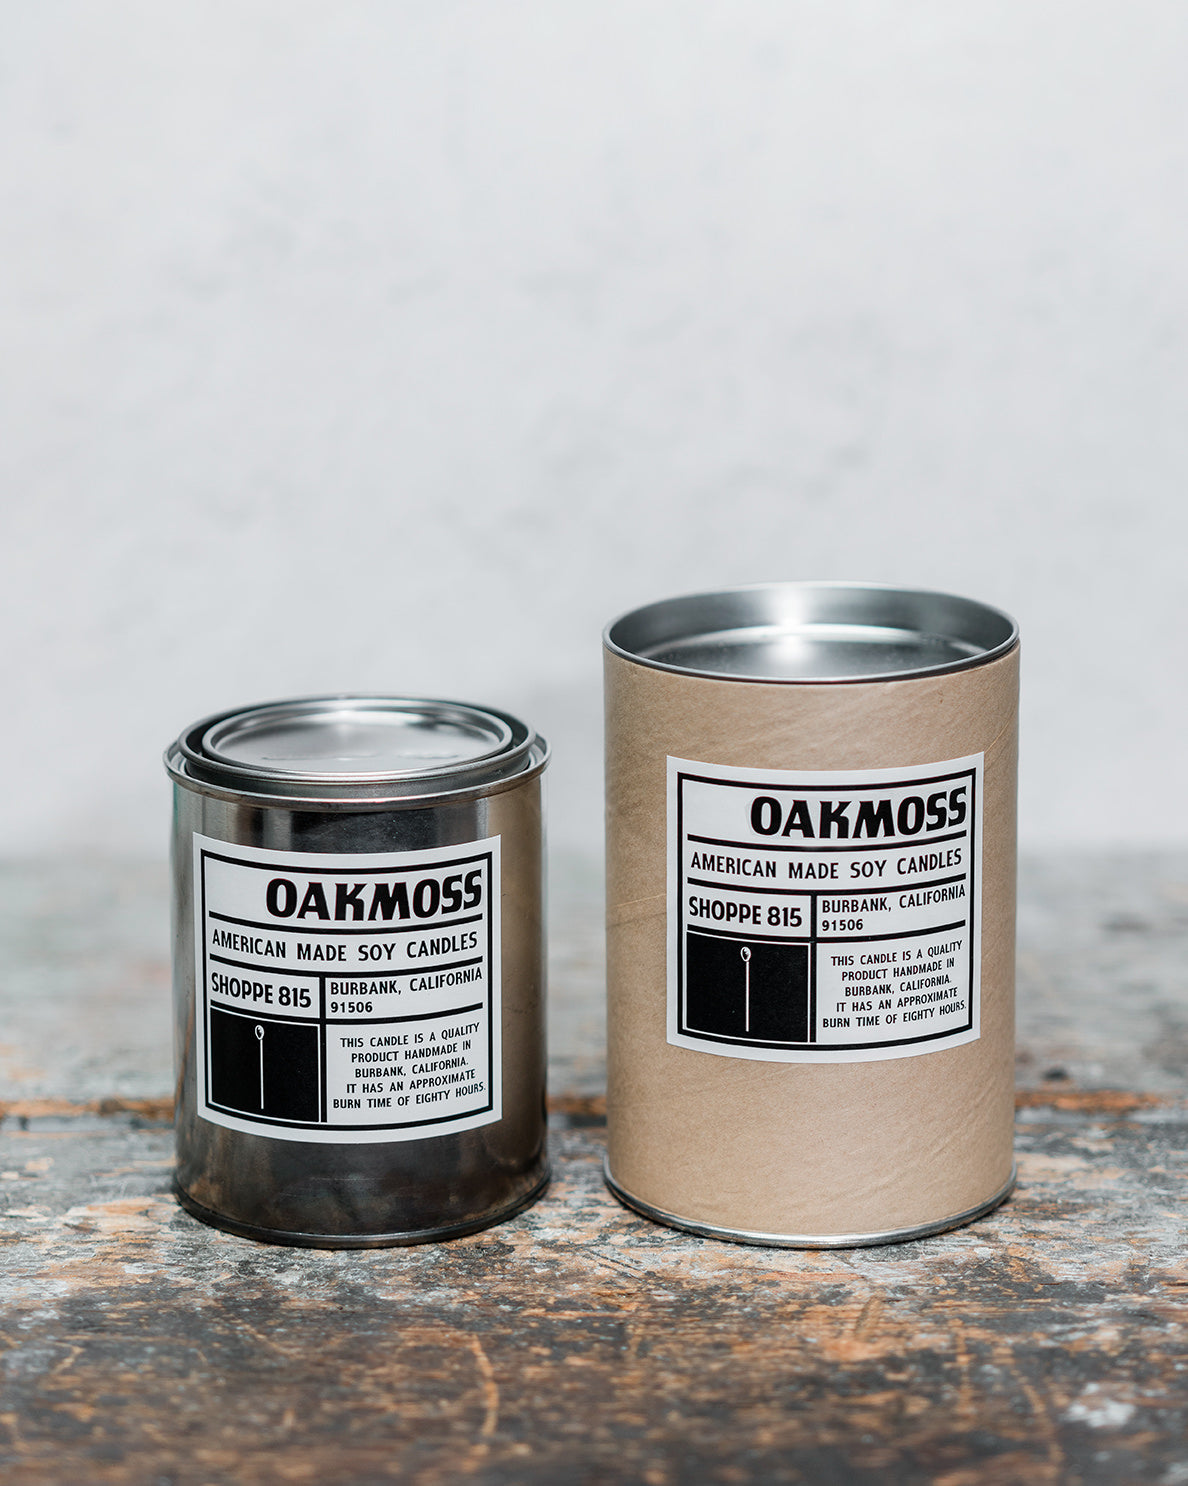 Oakmoss gender neutral tin candle on wooden shelf with packaging